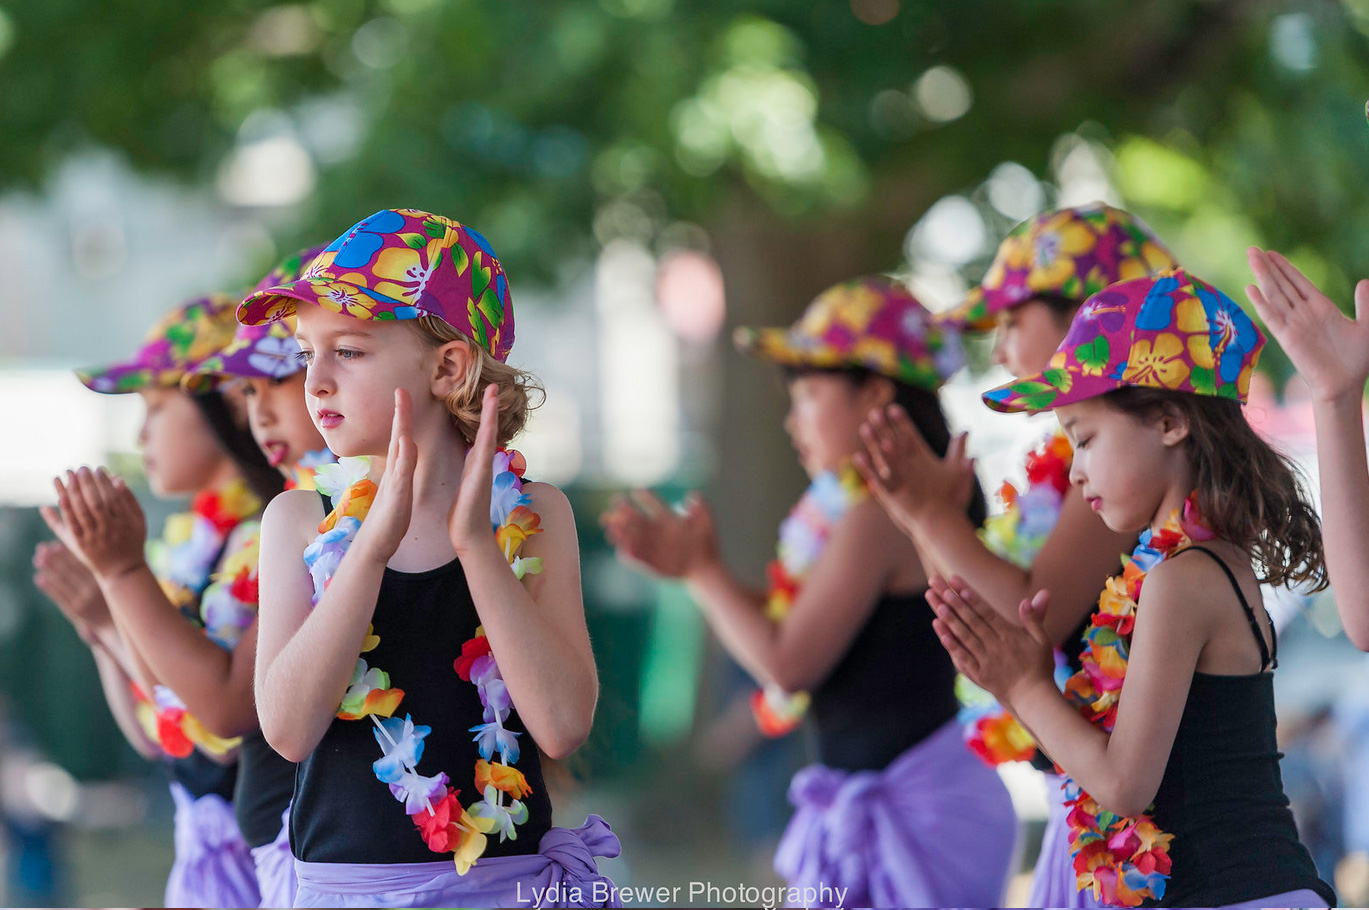 SunshineFromPolynesia-young-dancer_flower-hats